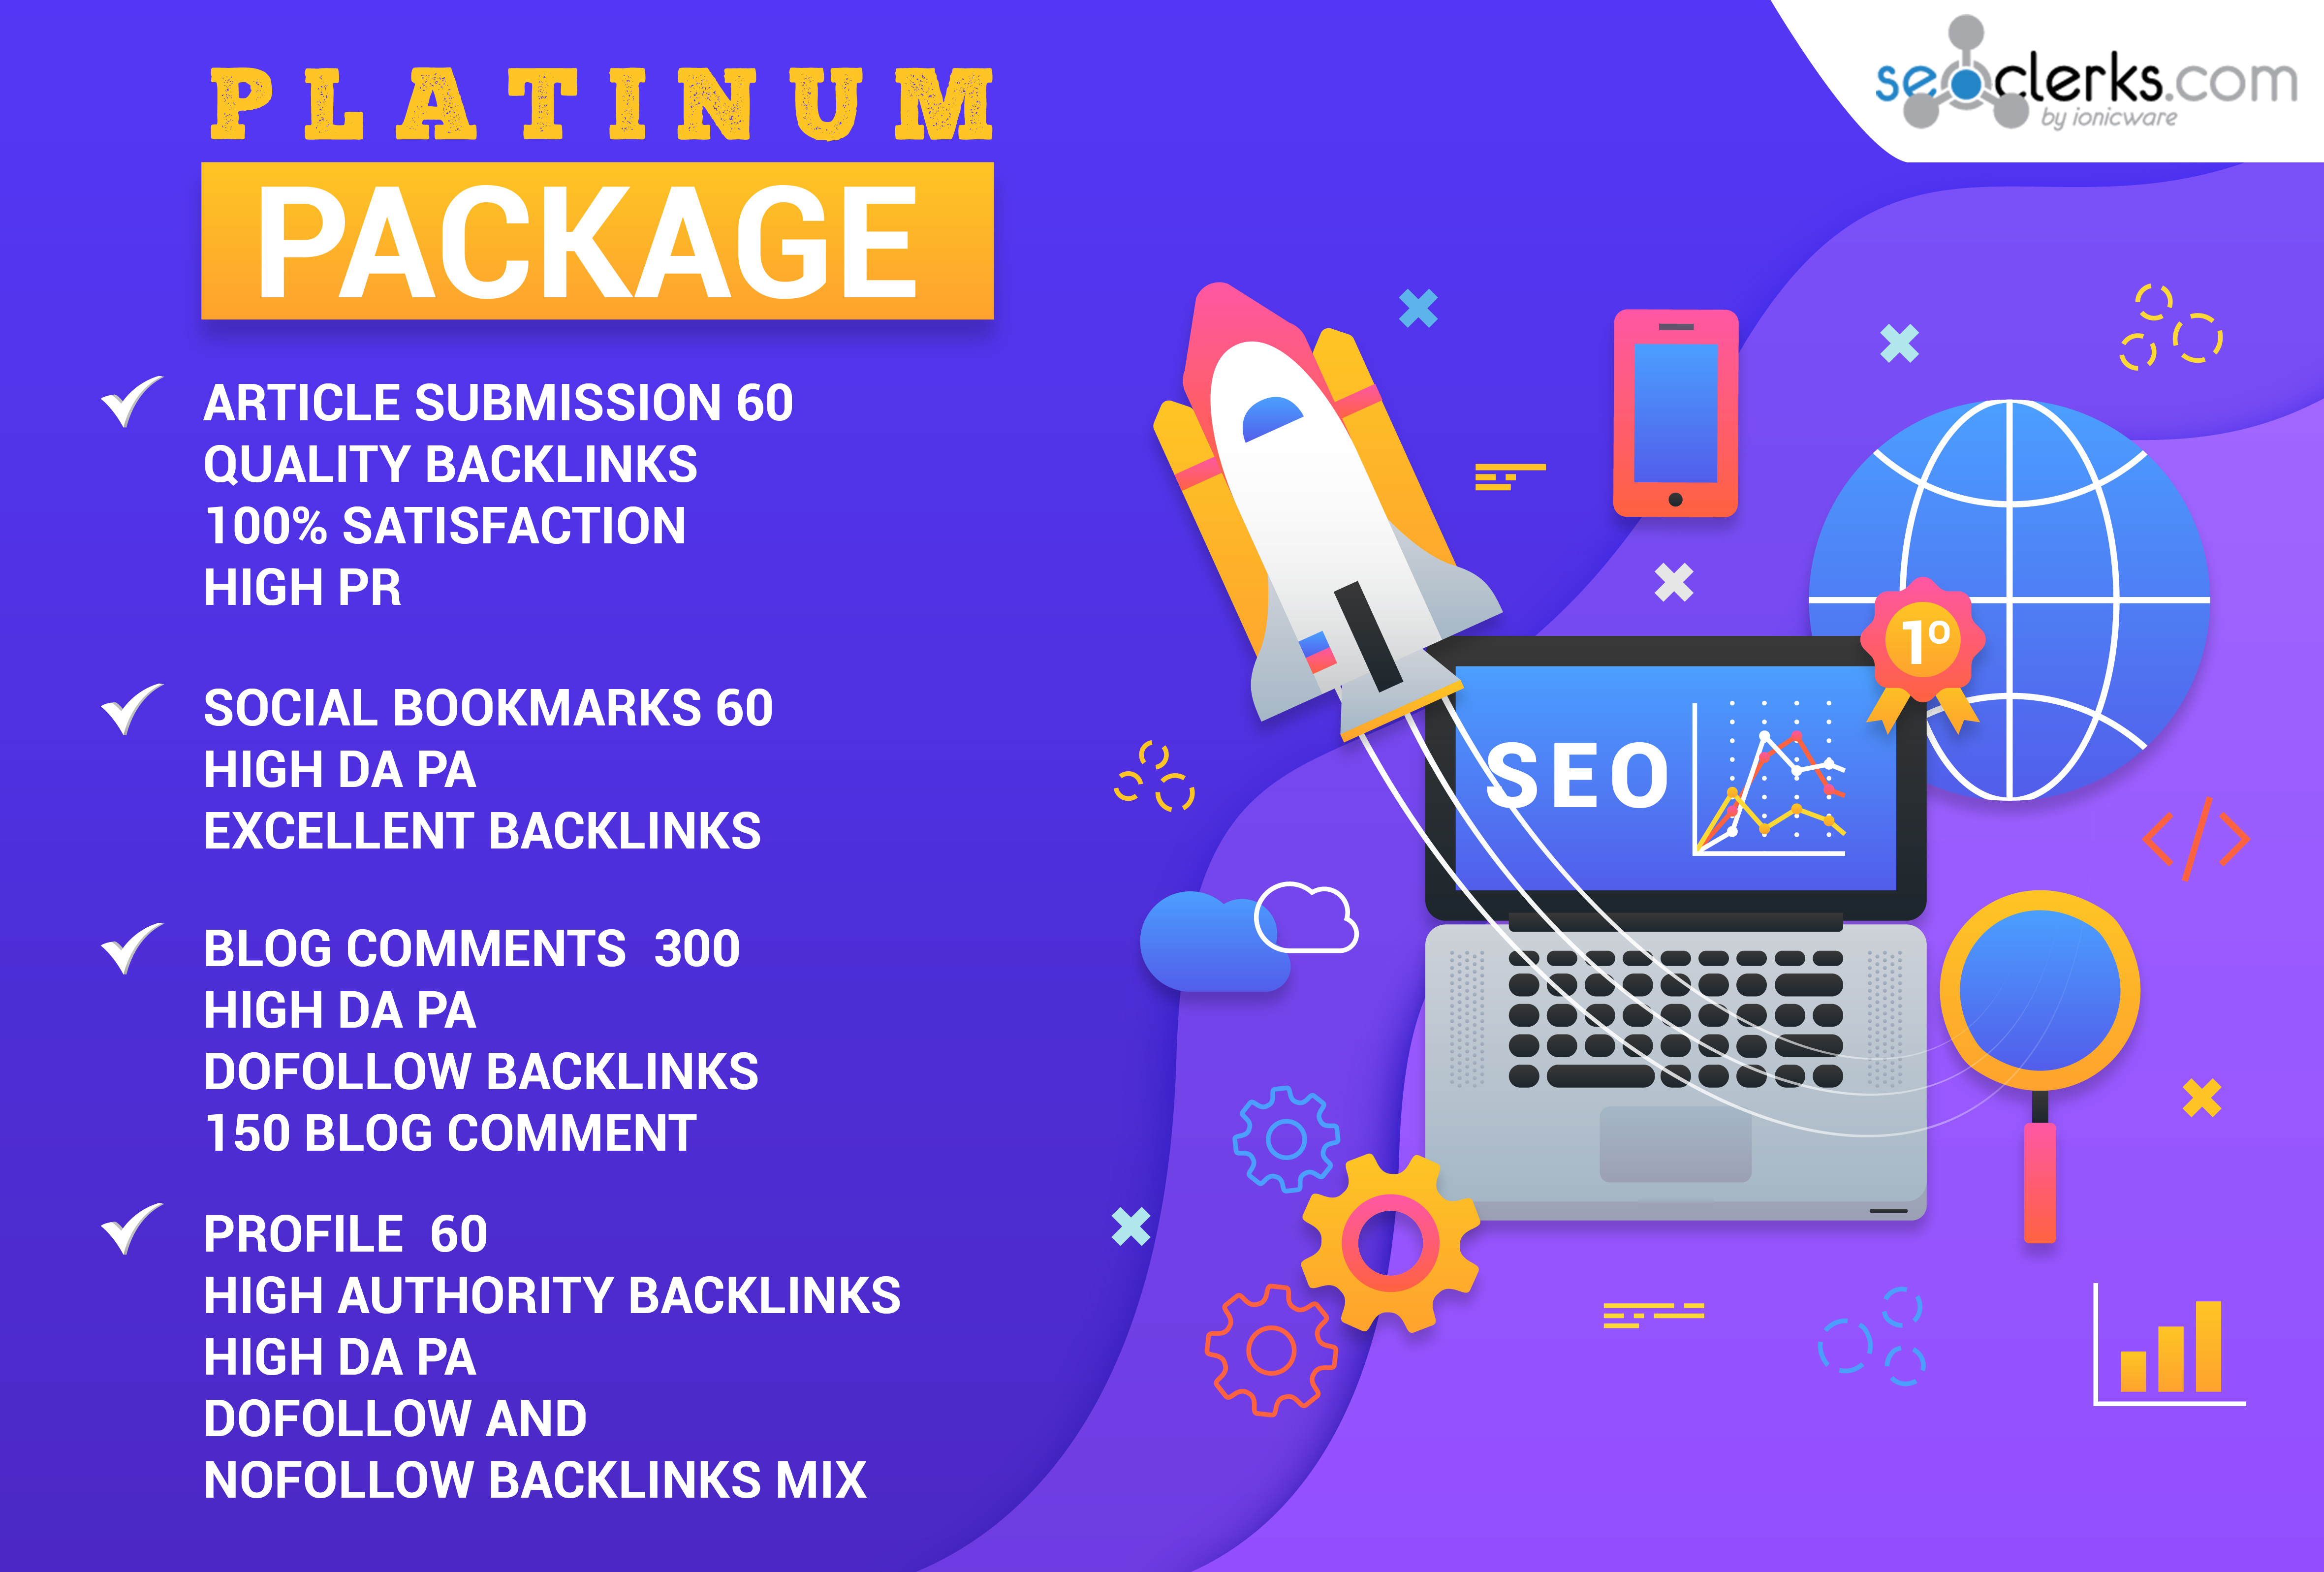 Provide Complete SEO Package For Your Website